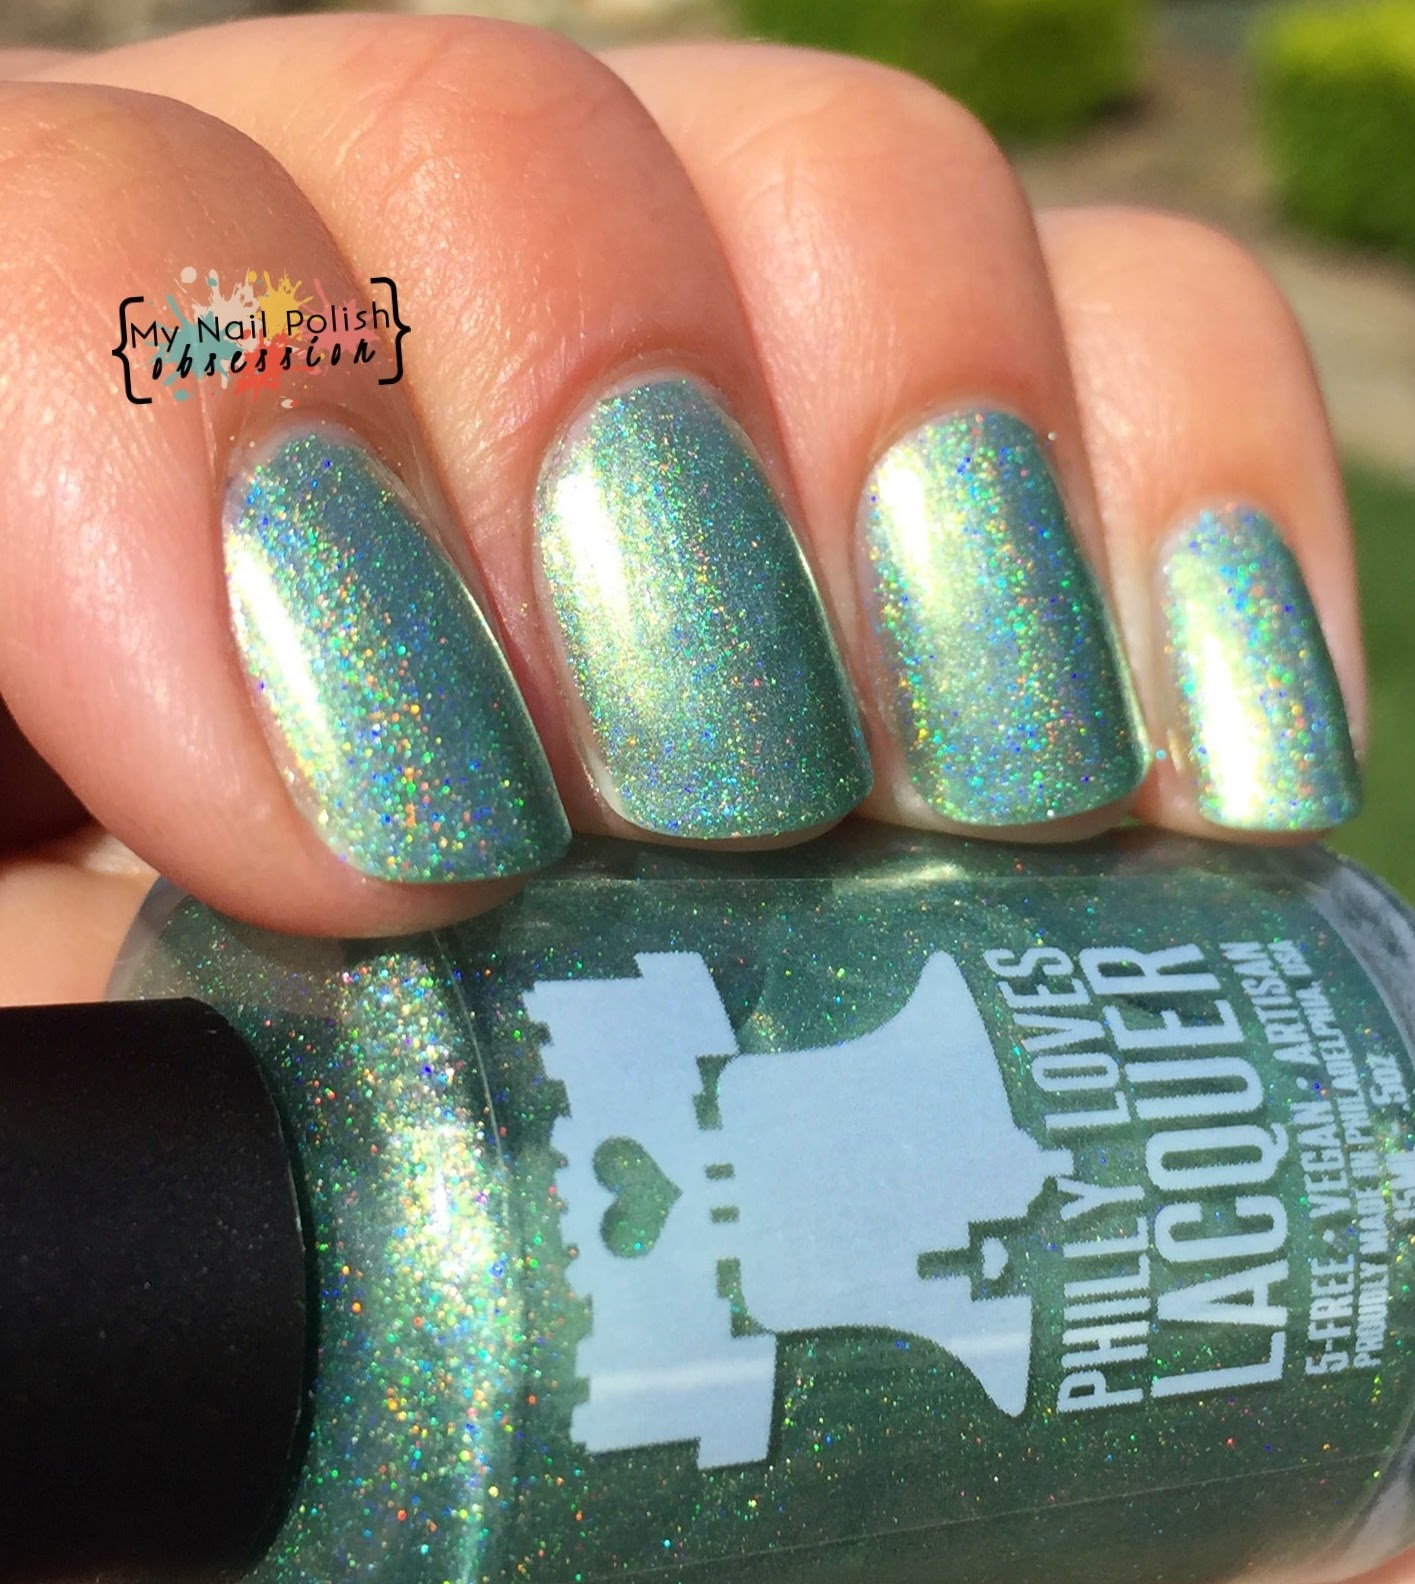 Philly Loves Lacquer Fortunate Rainbow